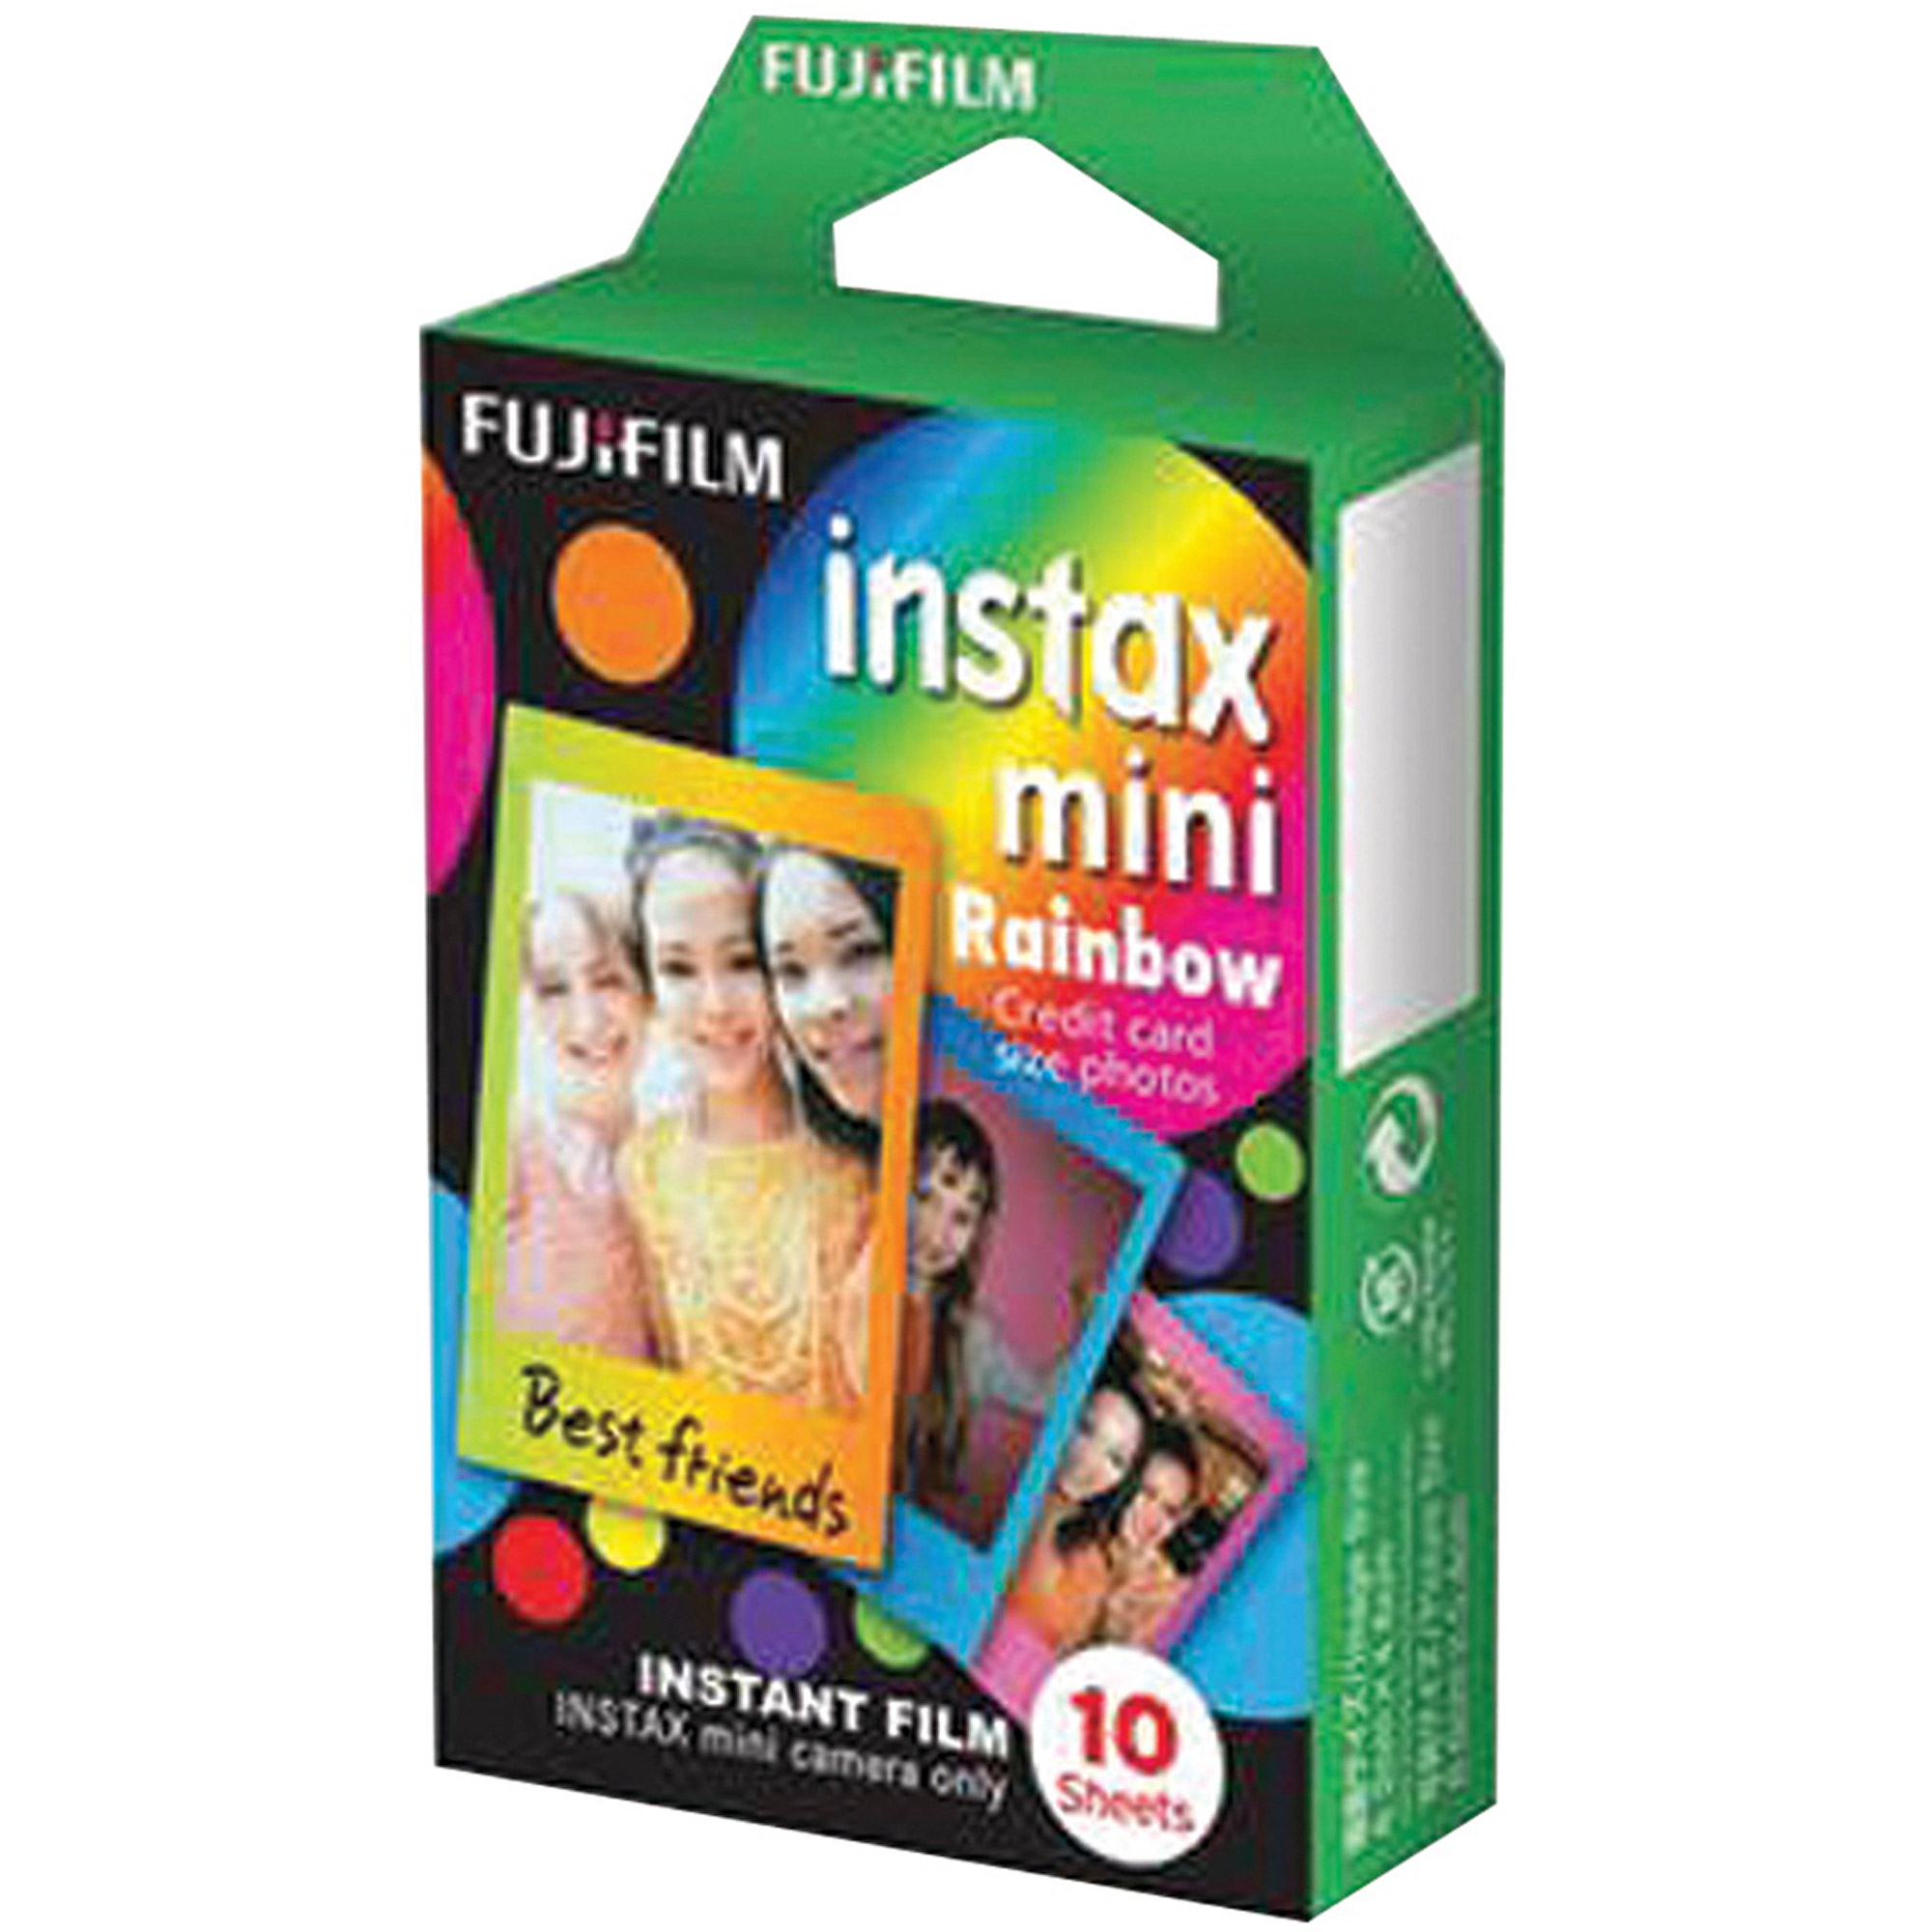 Fujifilm Instax Mini Rainbow Film Pack